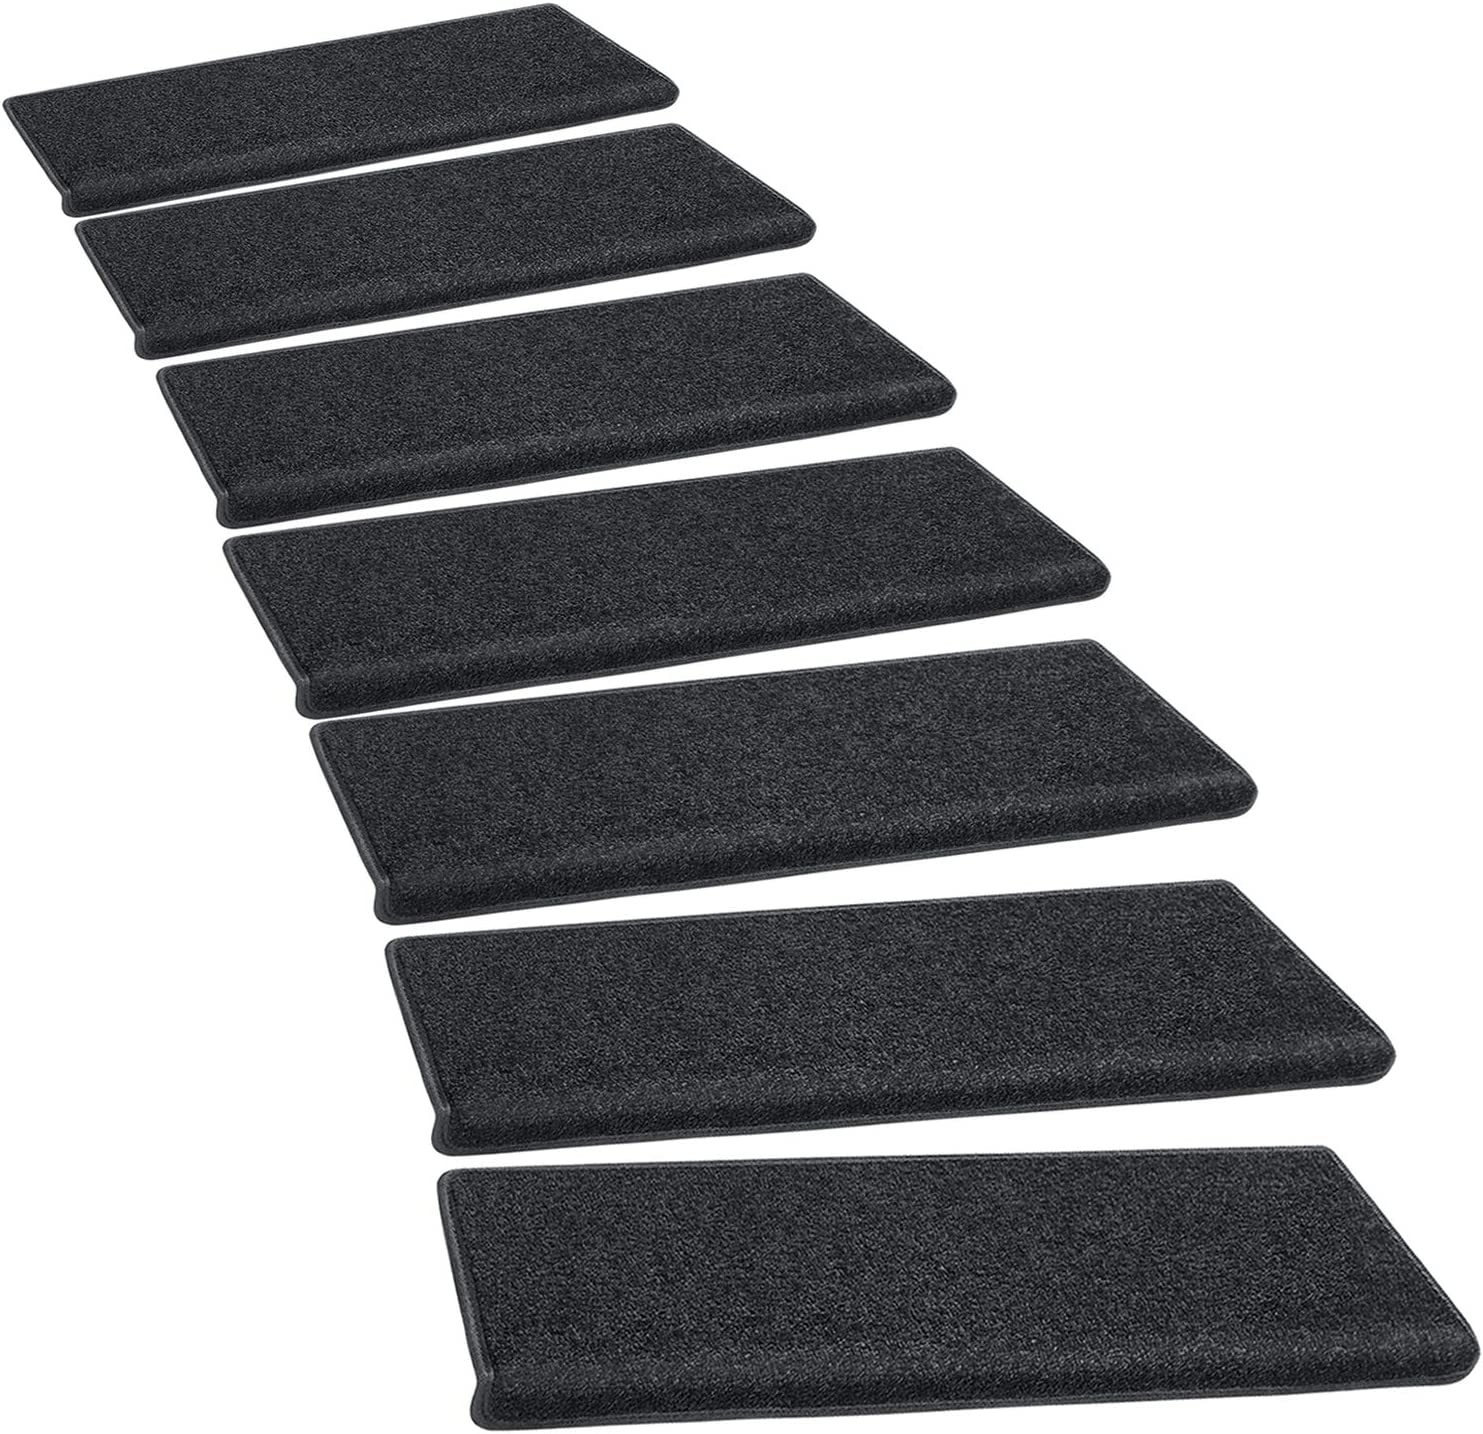 Amazon Com Pure Era Carpet Stair Treads Set Of 14 Non Slip Self   Black And White Carpet Stairs   Victorian   Striped   Geometric   Low Cost Simple   Unusual